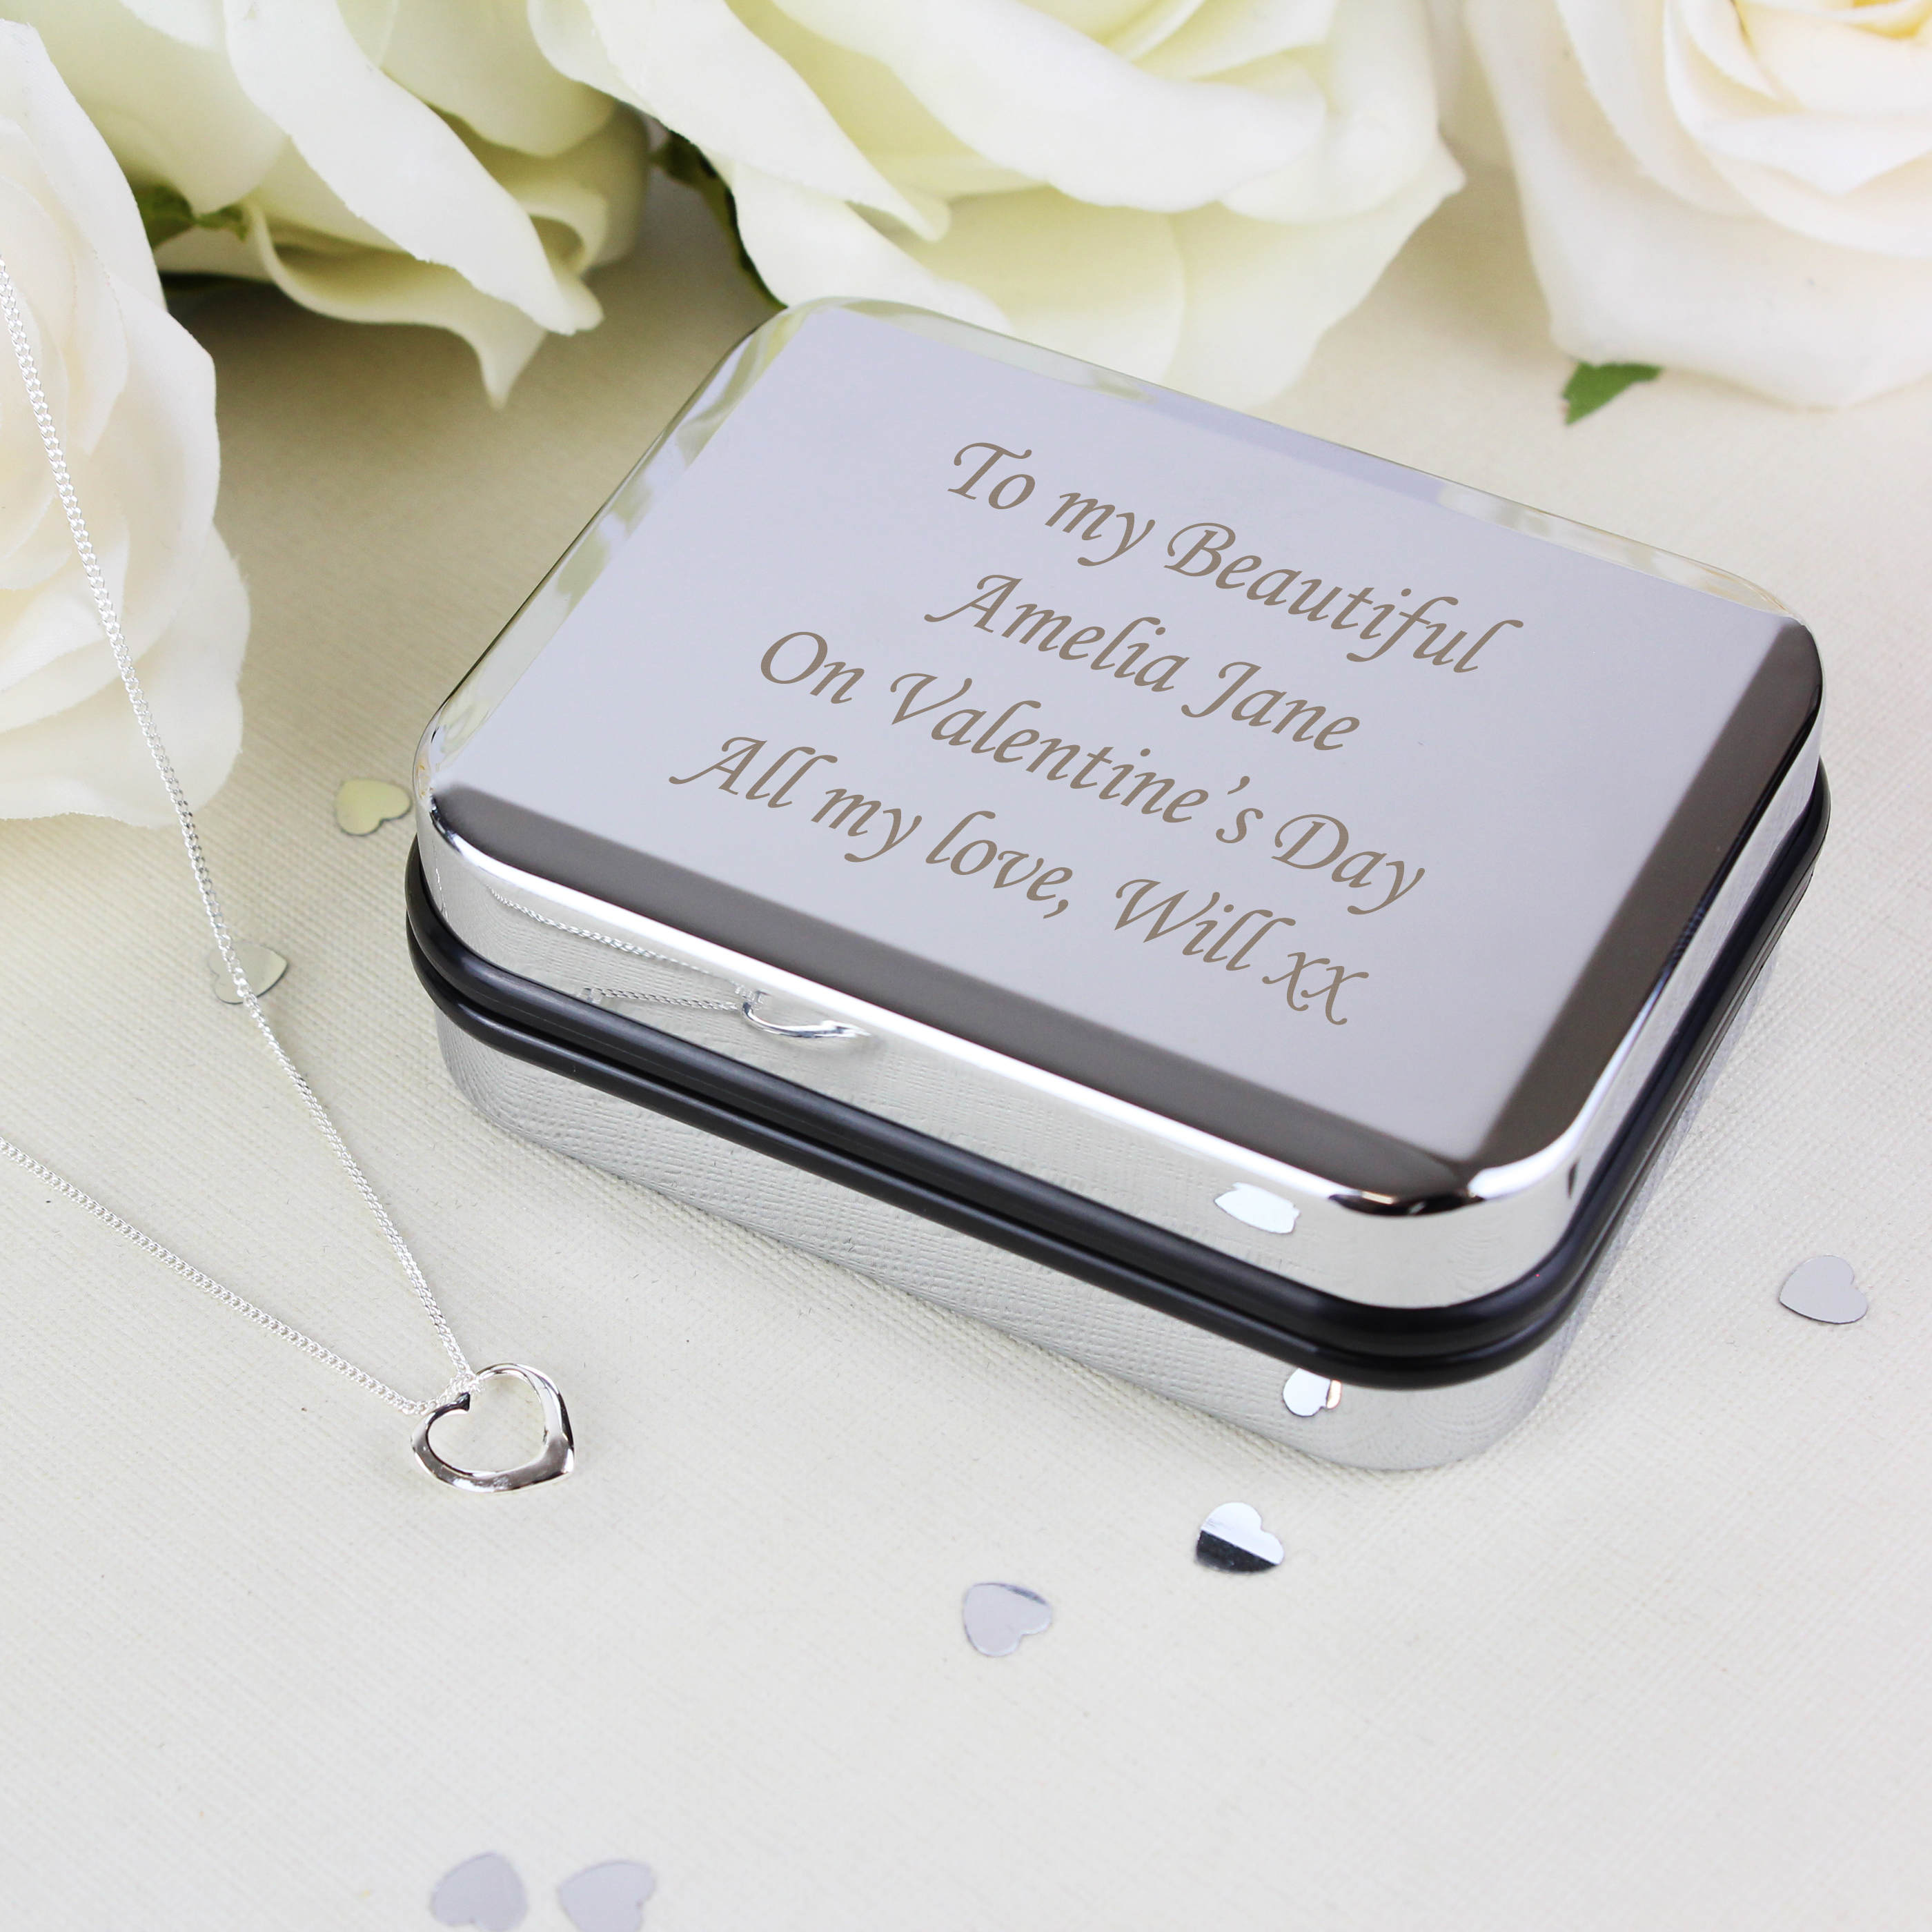 Engraved Necklace Box and Heart Shaped Necklace